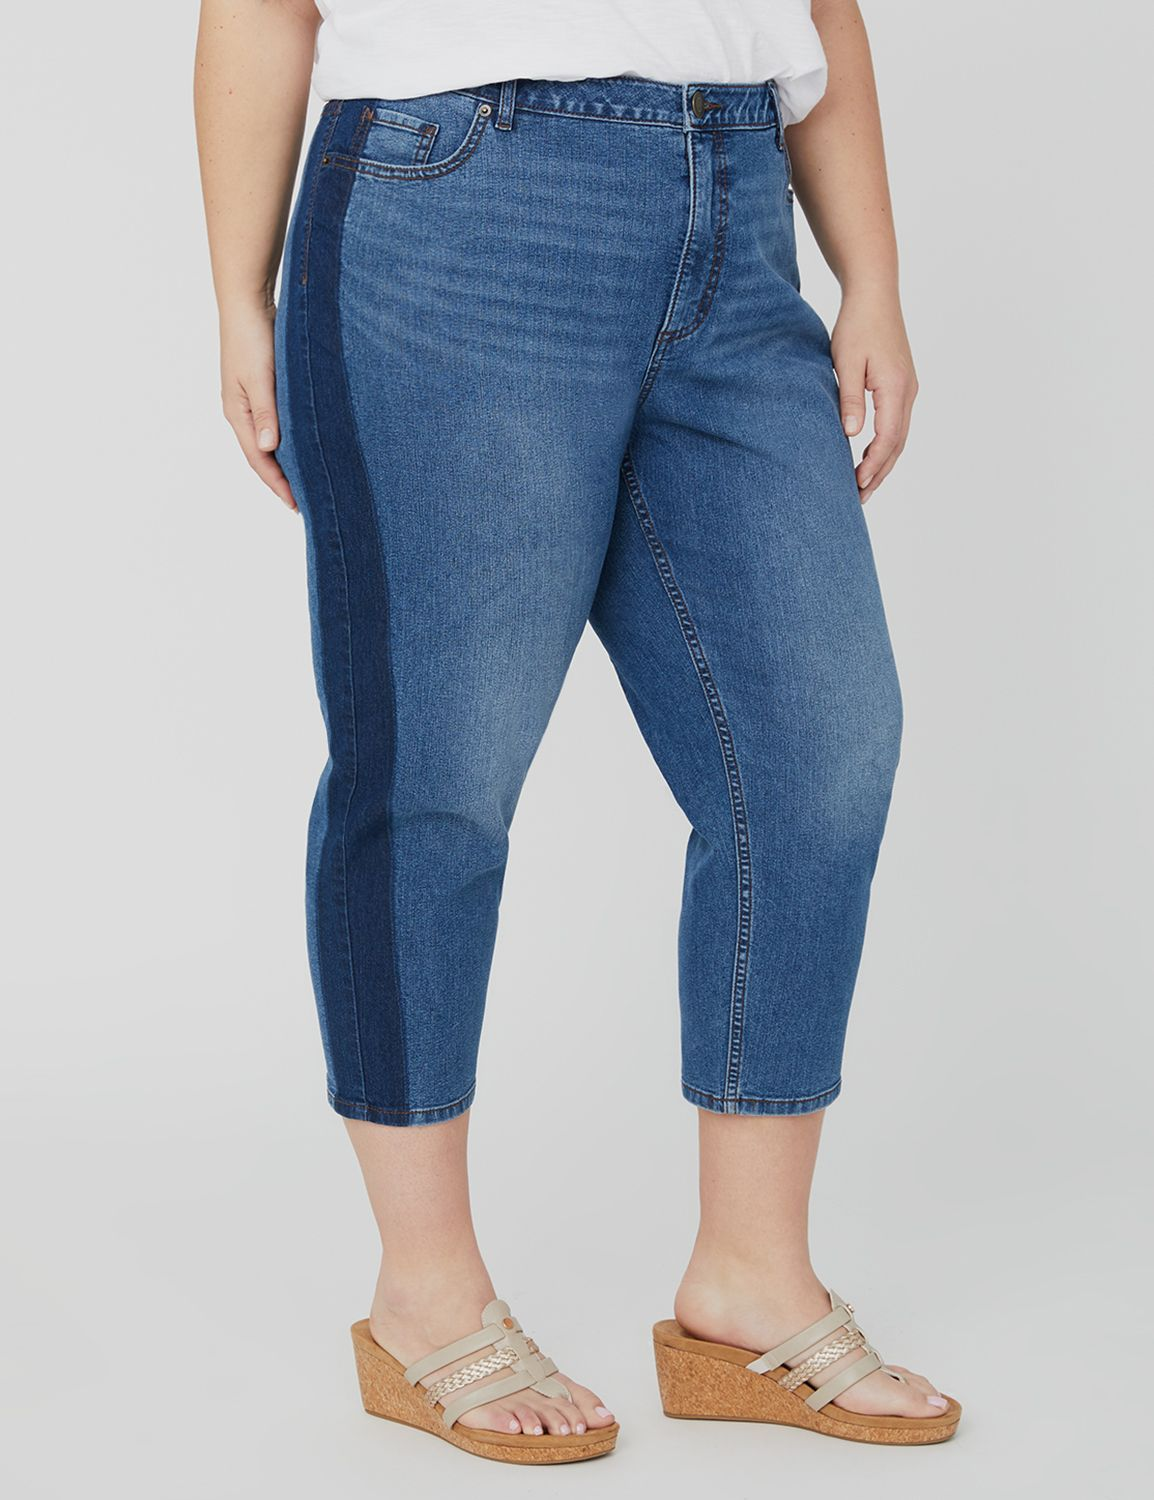 Jean Capri with Dark-Wash Stripe 1088046 2-TONE DENIM WASH ON SIDE S MP-300099562